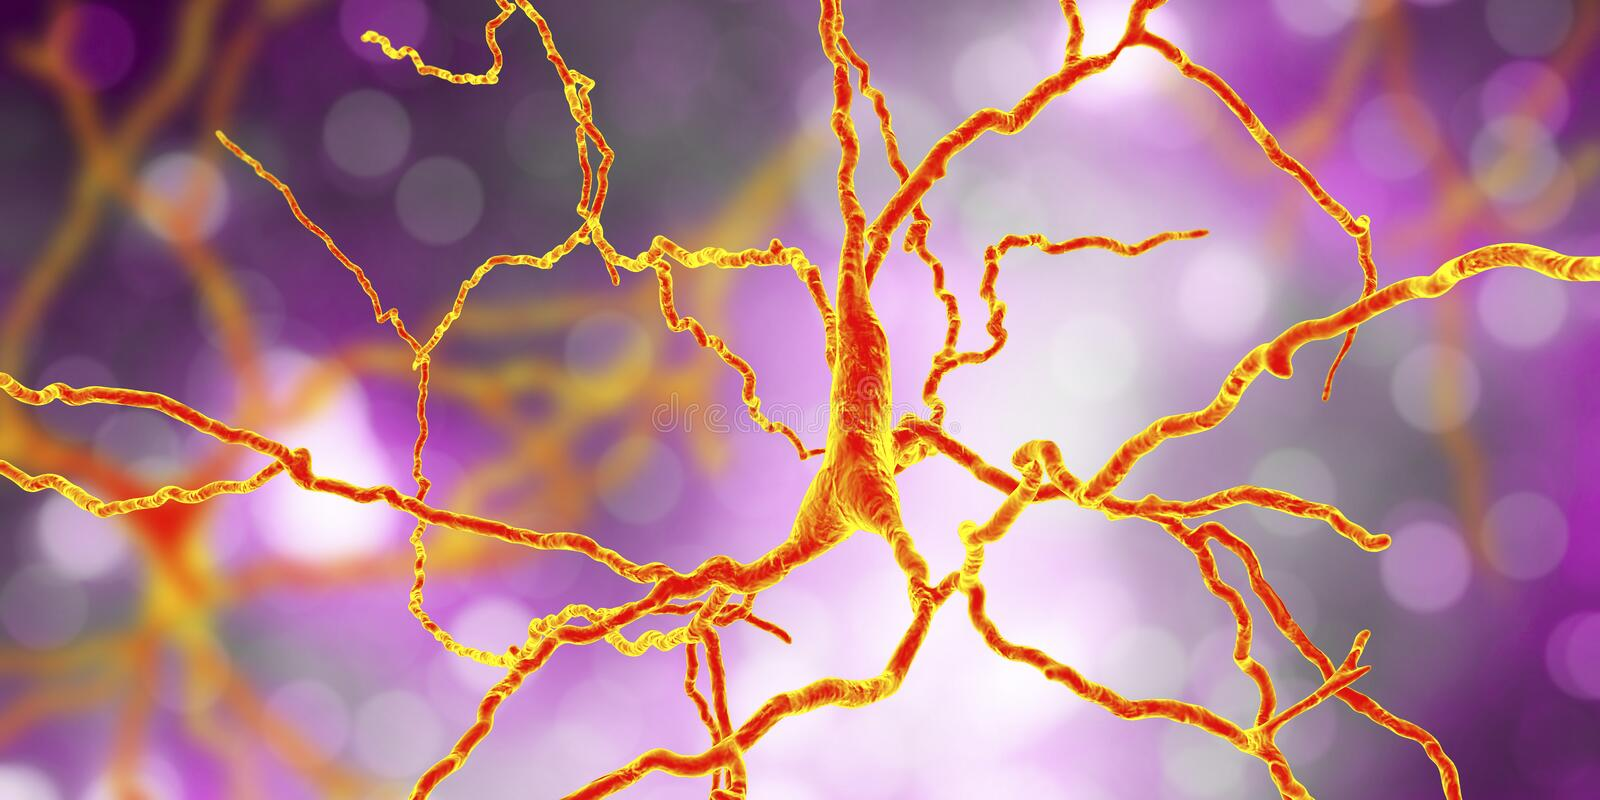 Dopaminergic neuron, datorrekonstruktion vektor illustrationer